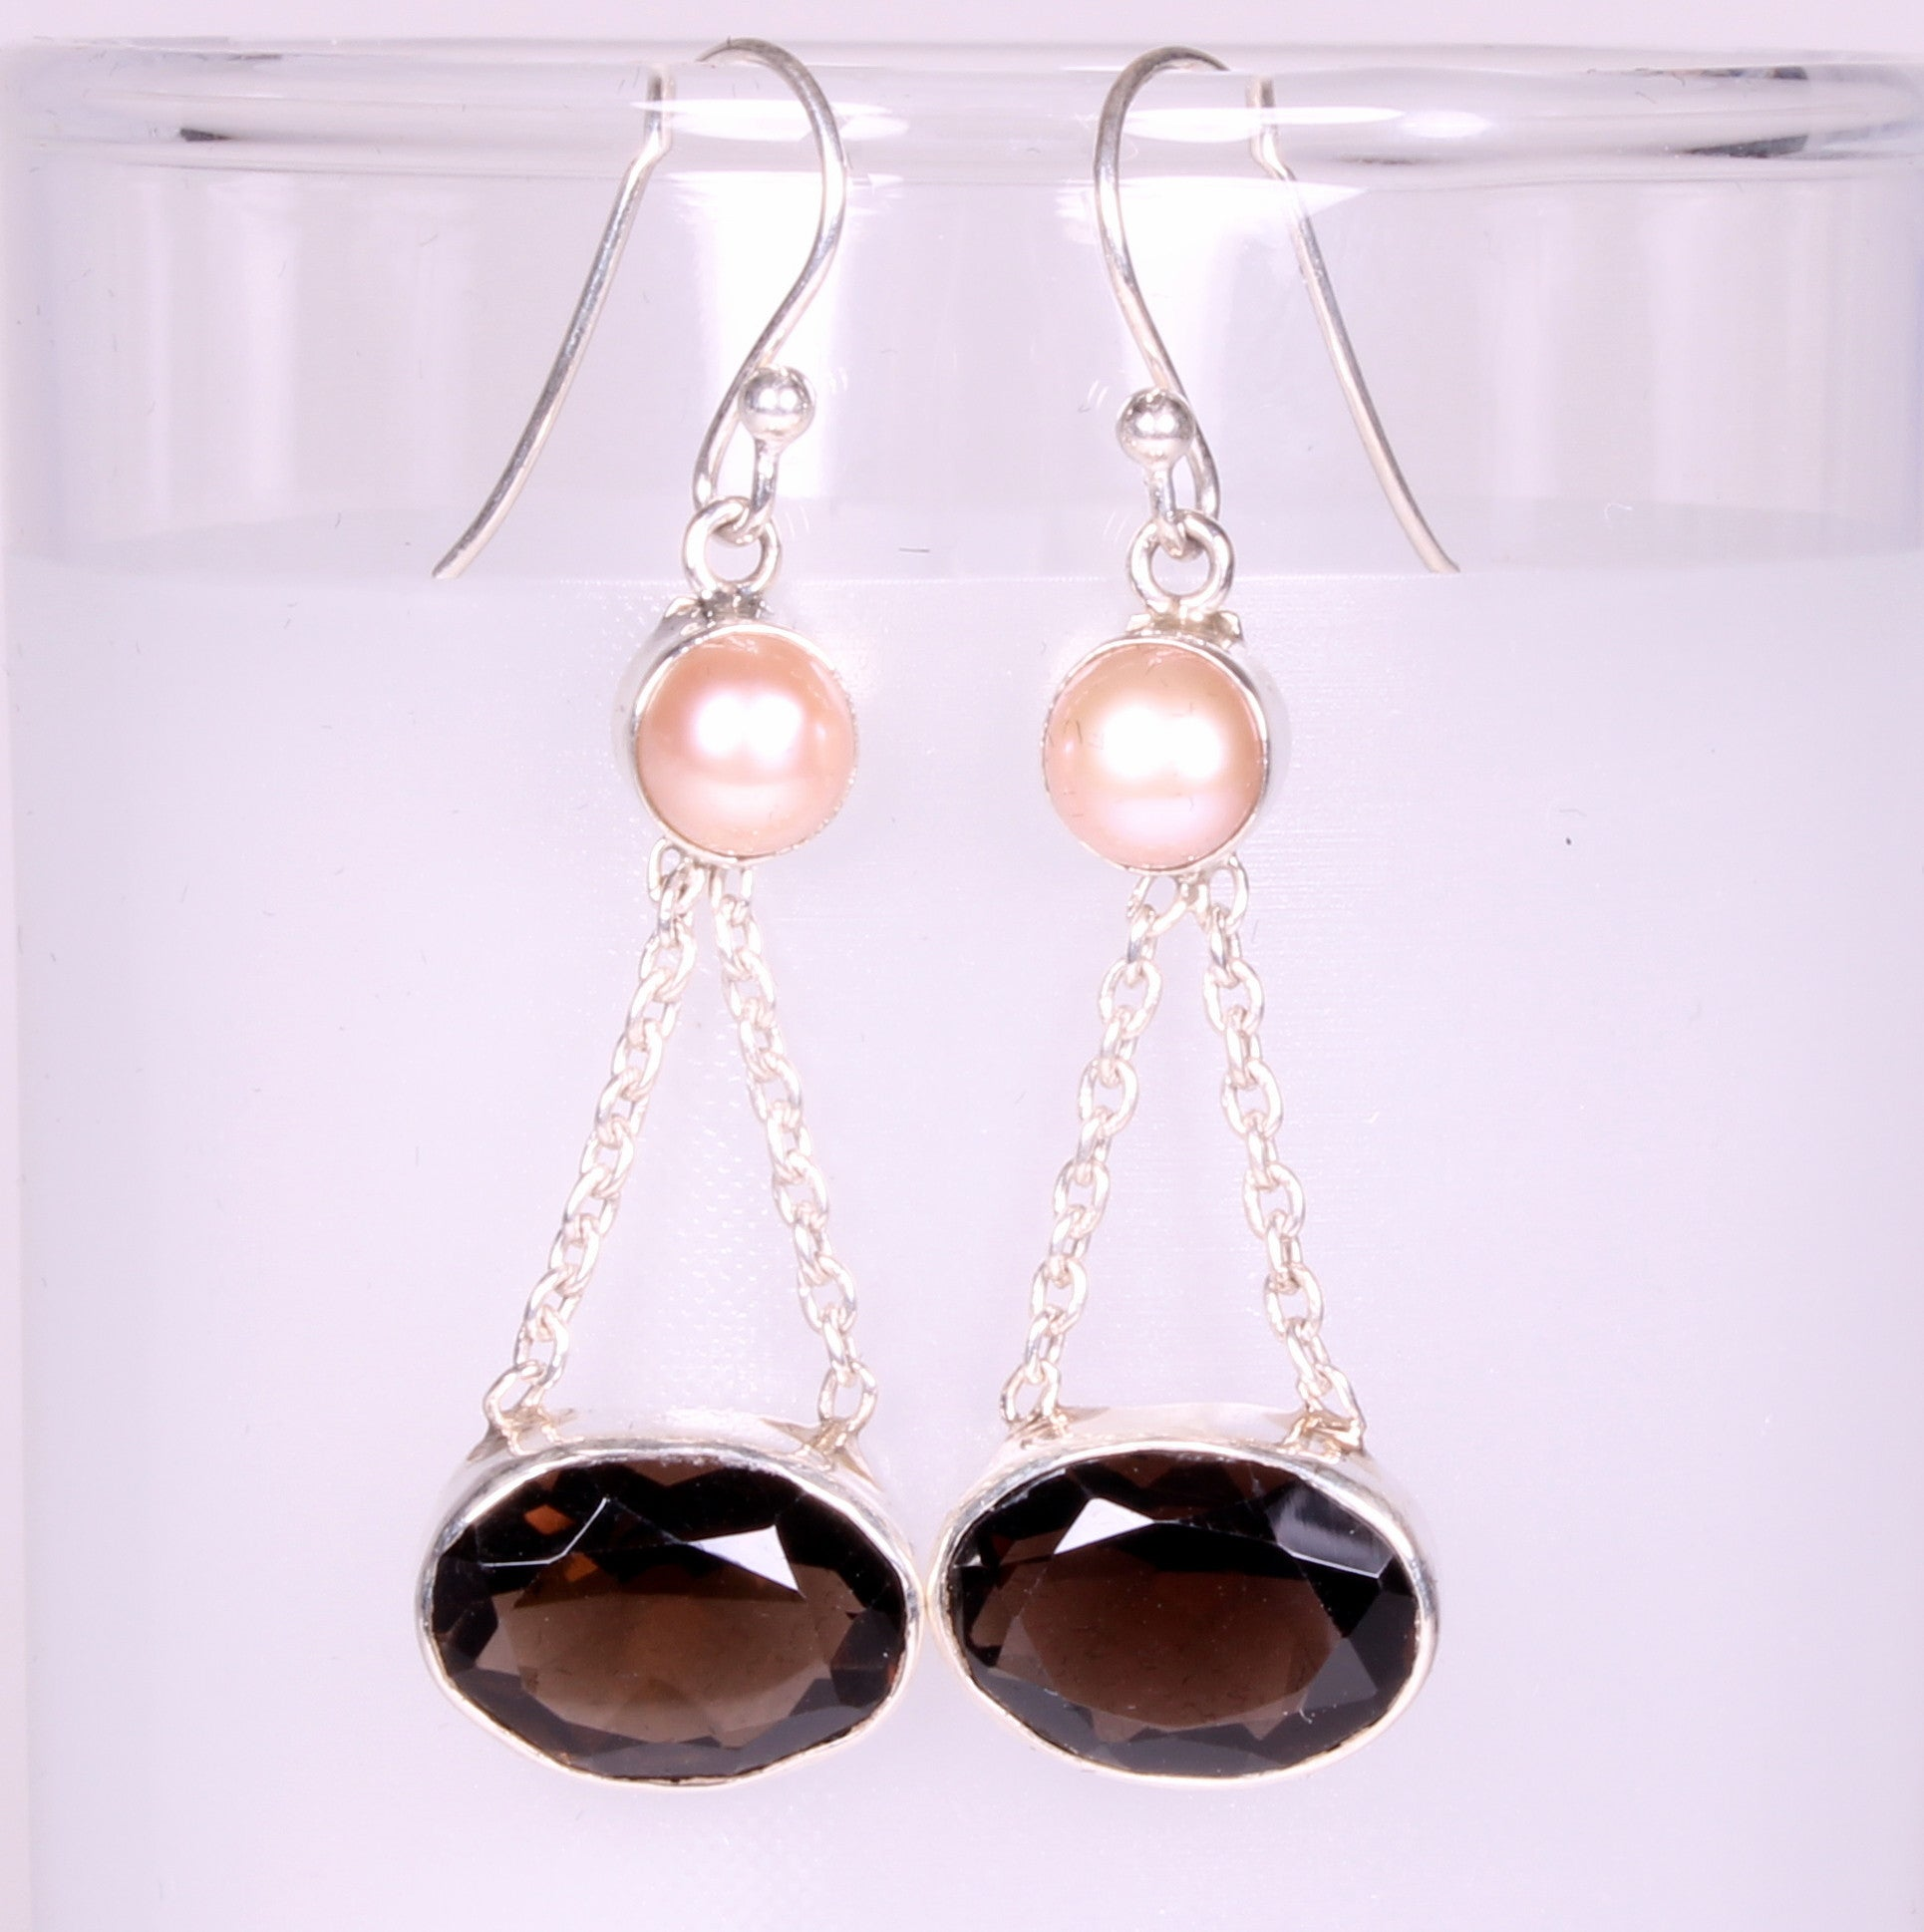 Smoky Quartz and Freshwater Pearl Sterling Silver Earrings